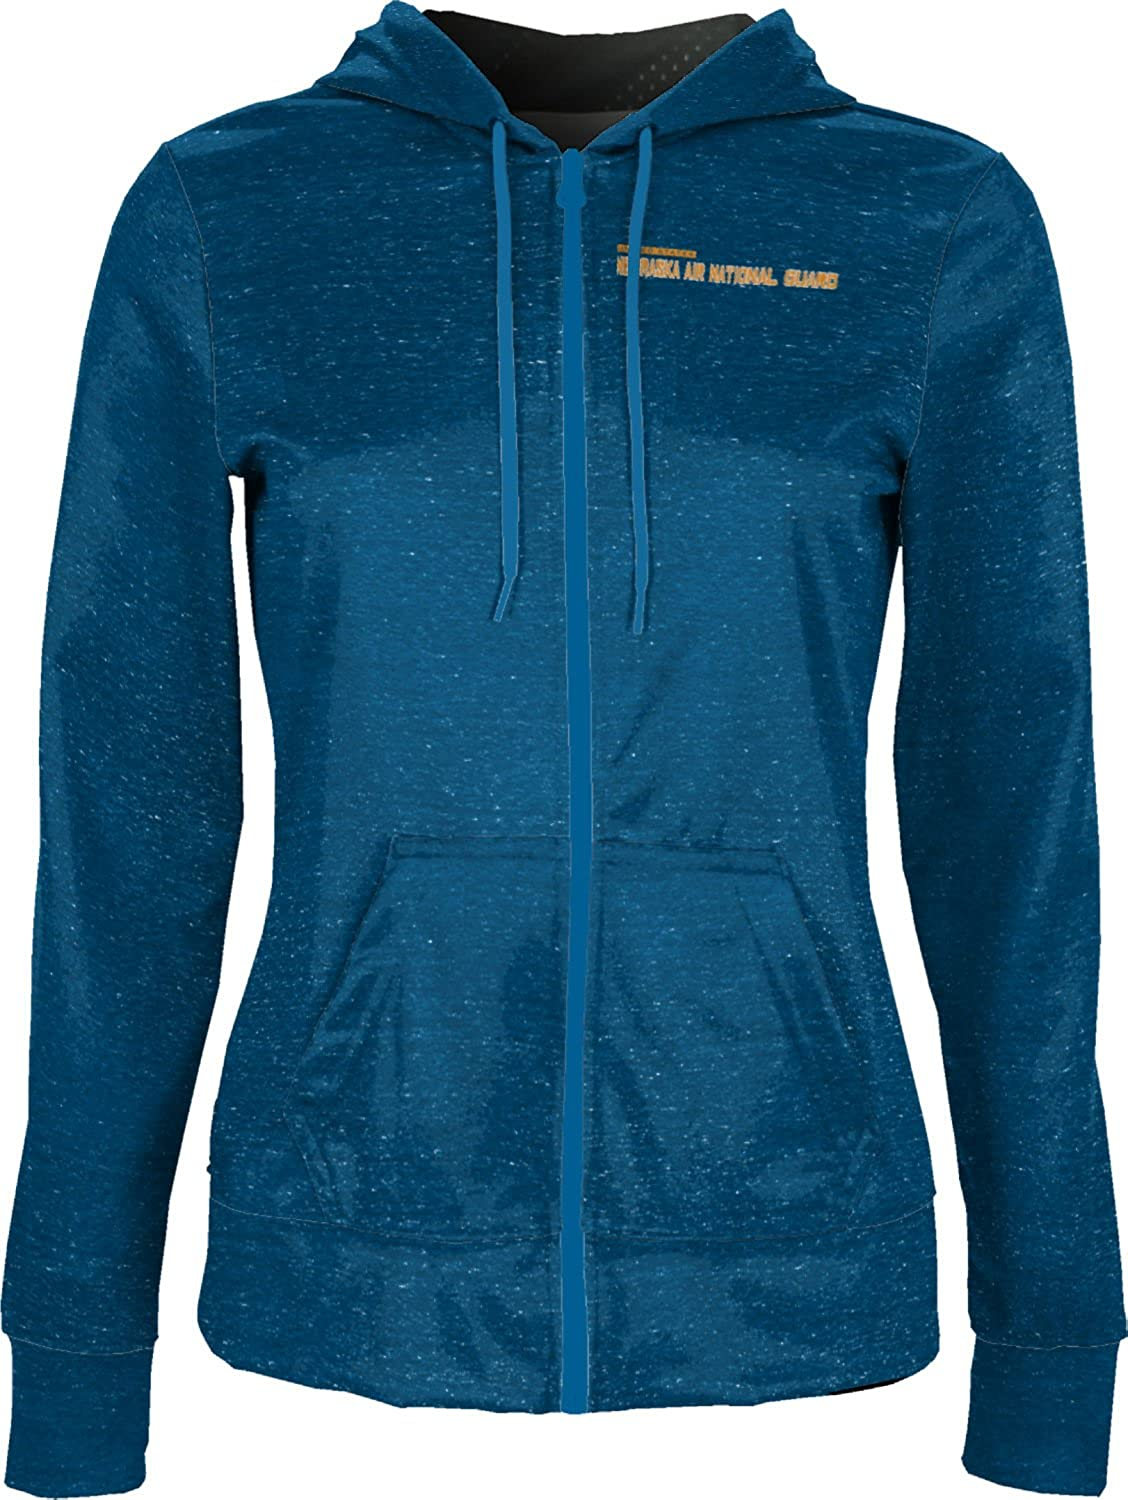 ProSphere Women's Nebraska Air National Guard Military Heather Fullzip Hoodie